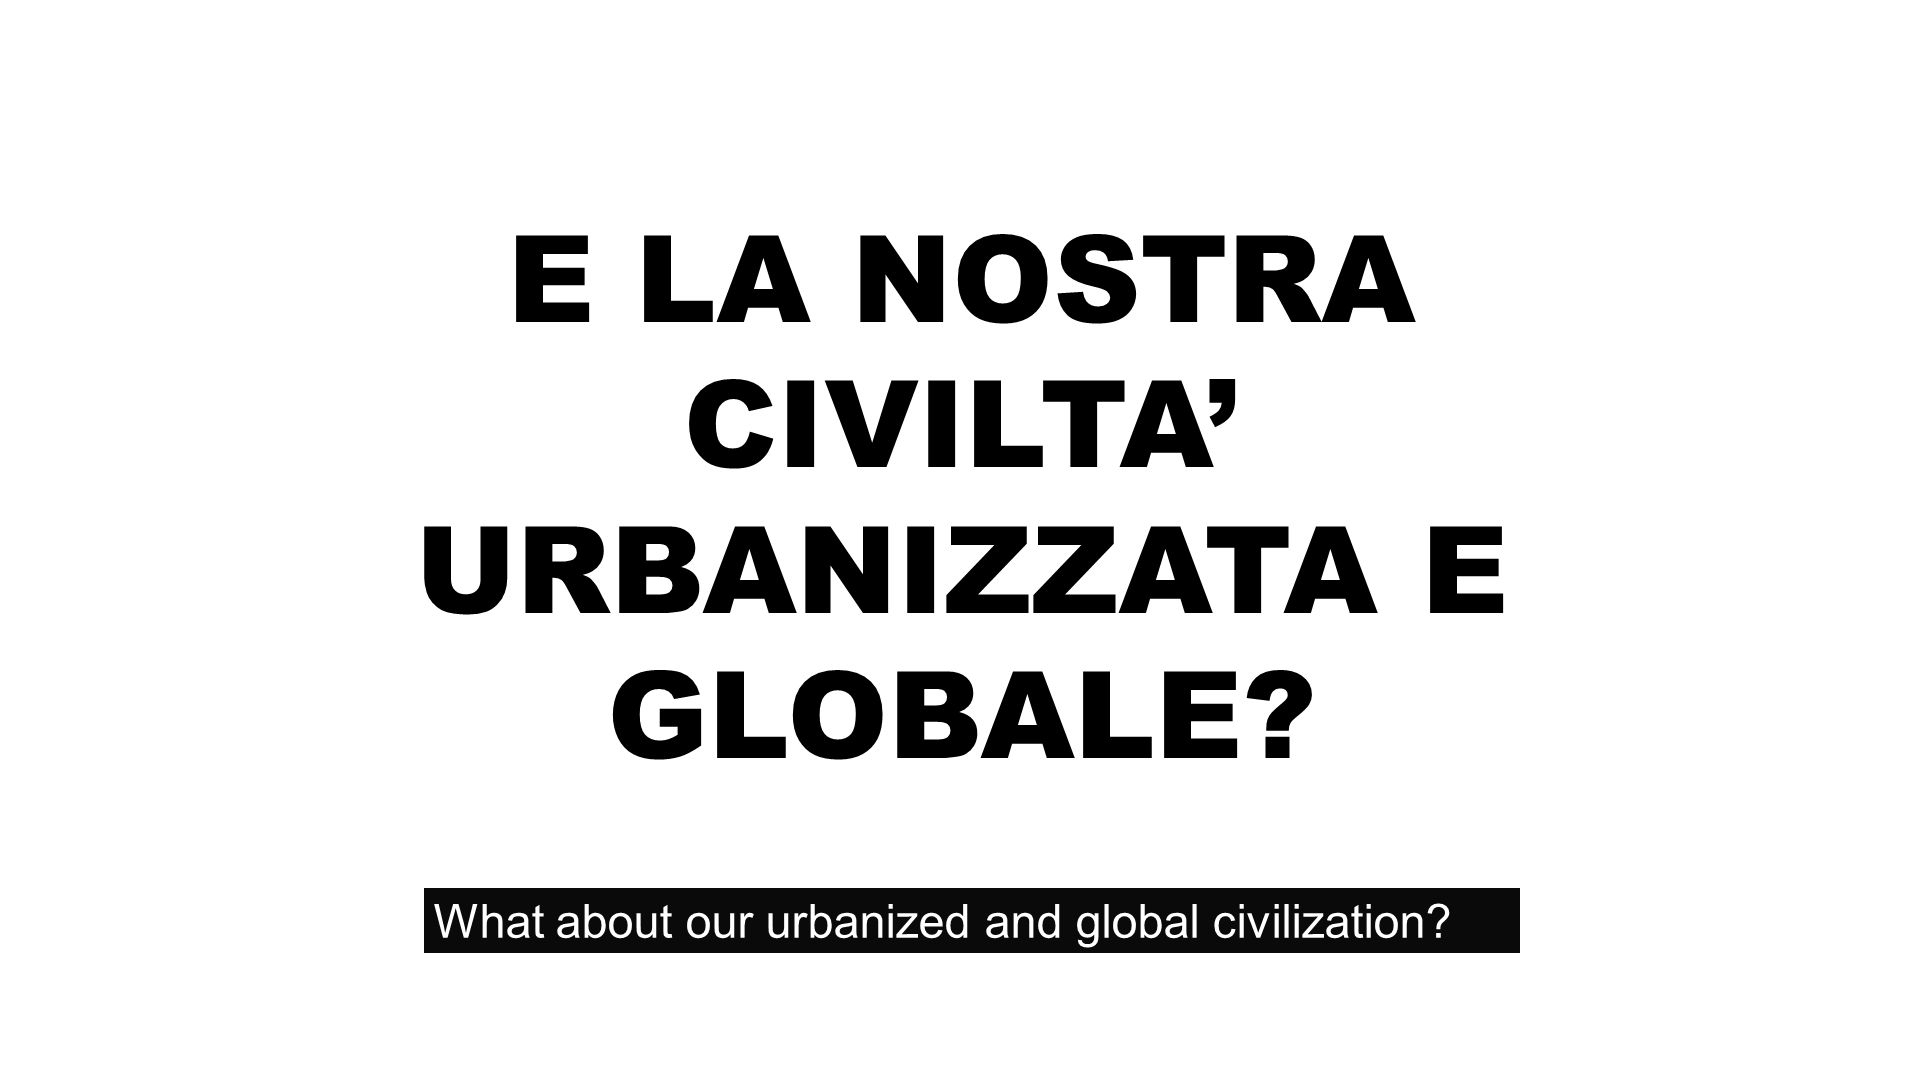 E LA NOSTRA CIVILTA URBANIZZATA E GLOBALE? What about our urbanized and global civilization?